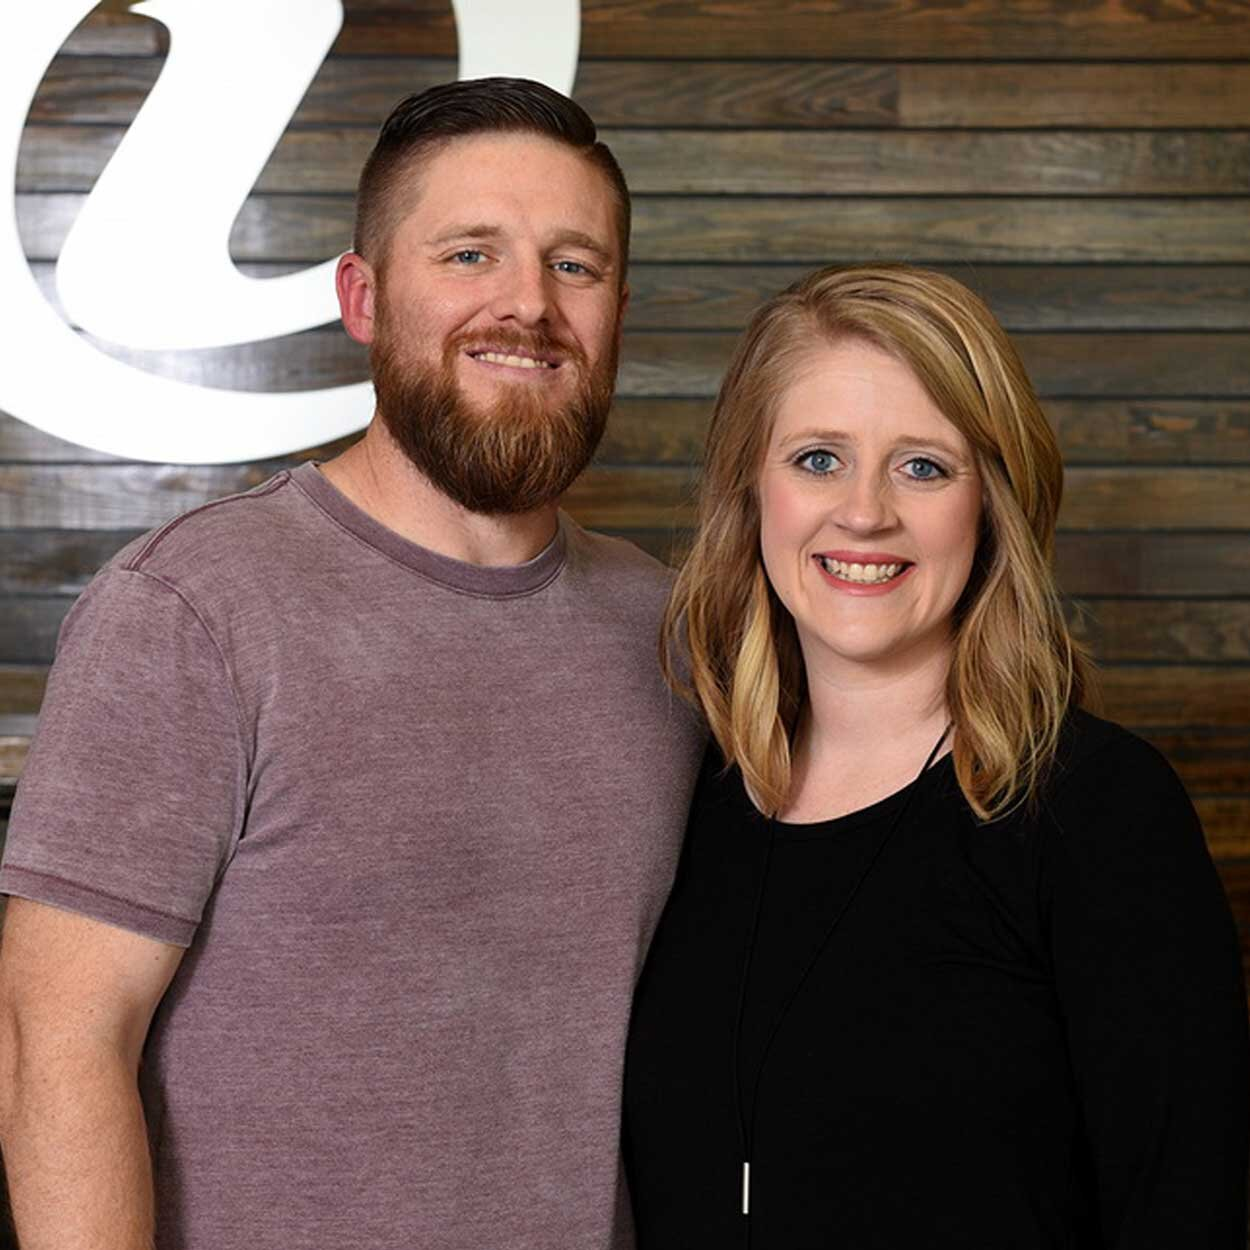 Pastors Chris & Courtnie Betzhold - CHILDREN'S PASTORChris and his wife, Courtnie, have two daughters, Landrie & Sadie. He oversees our Children's Ministries for ages 0 to 11. He has served on our leadership team for six years.Email Chris / Email Courtnie